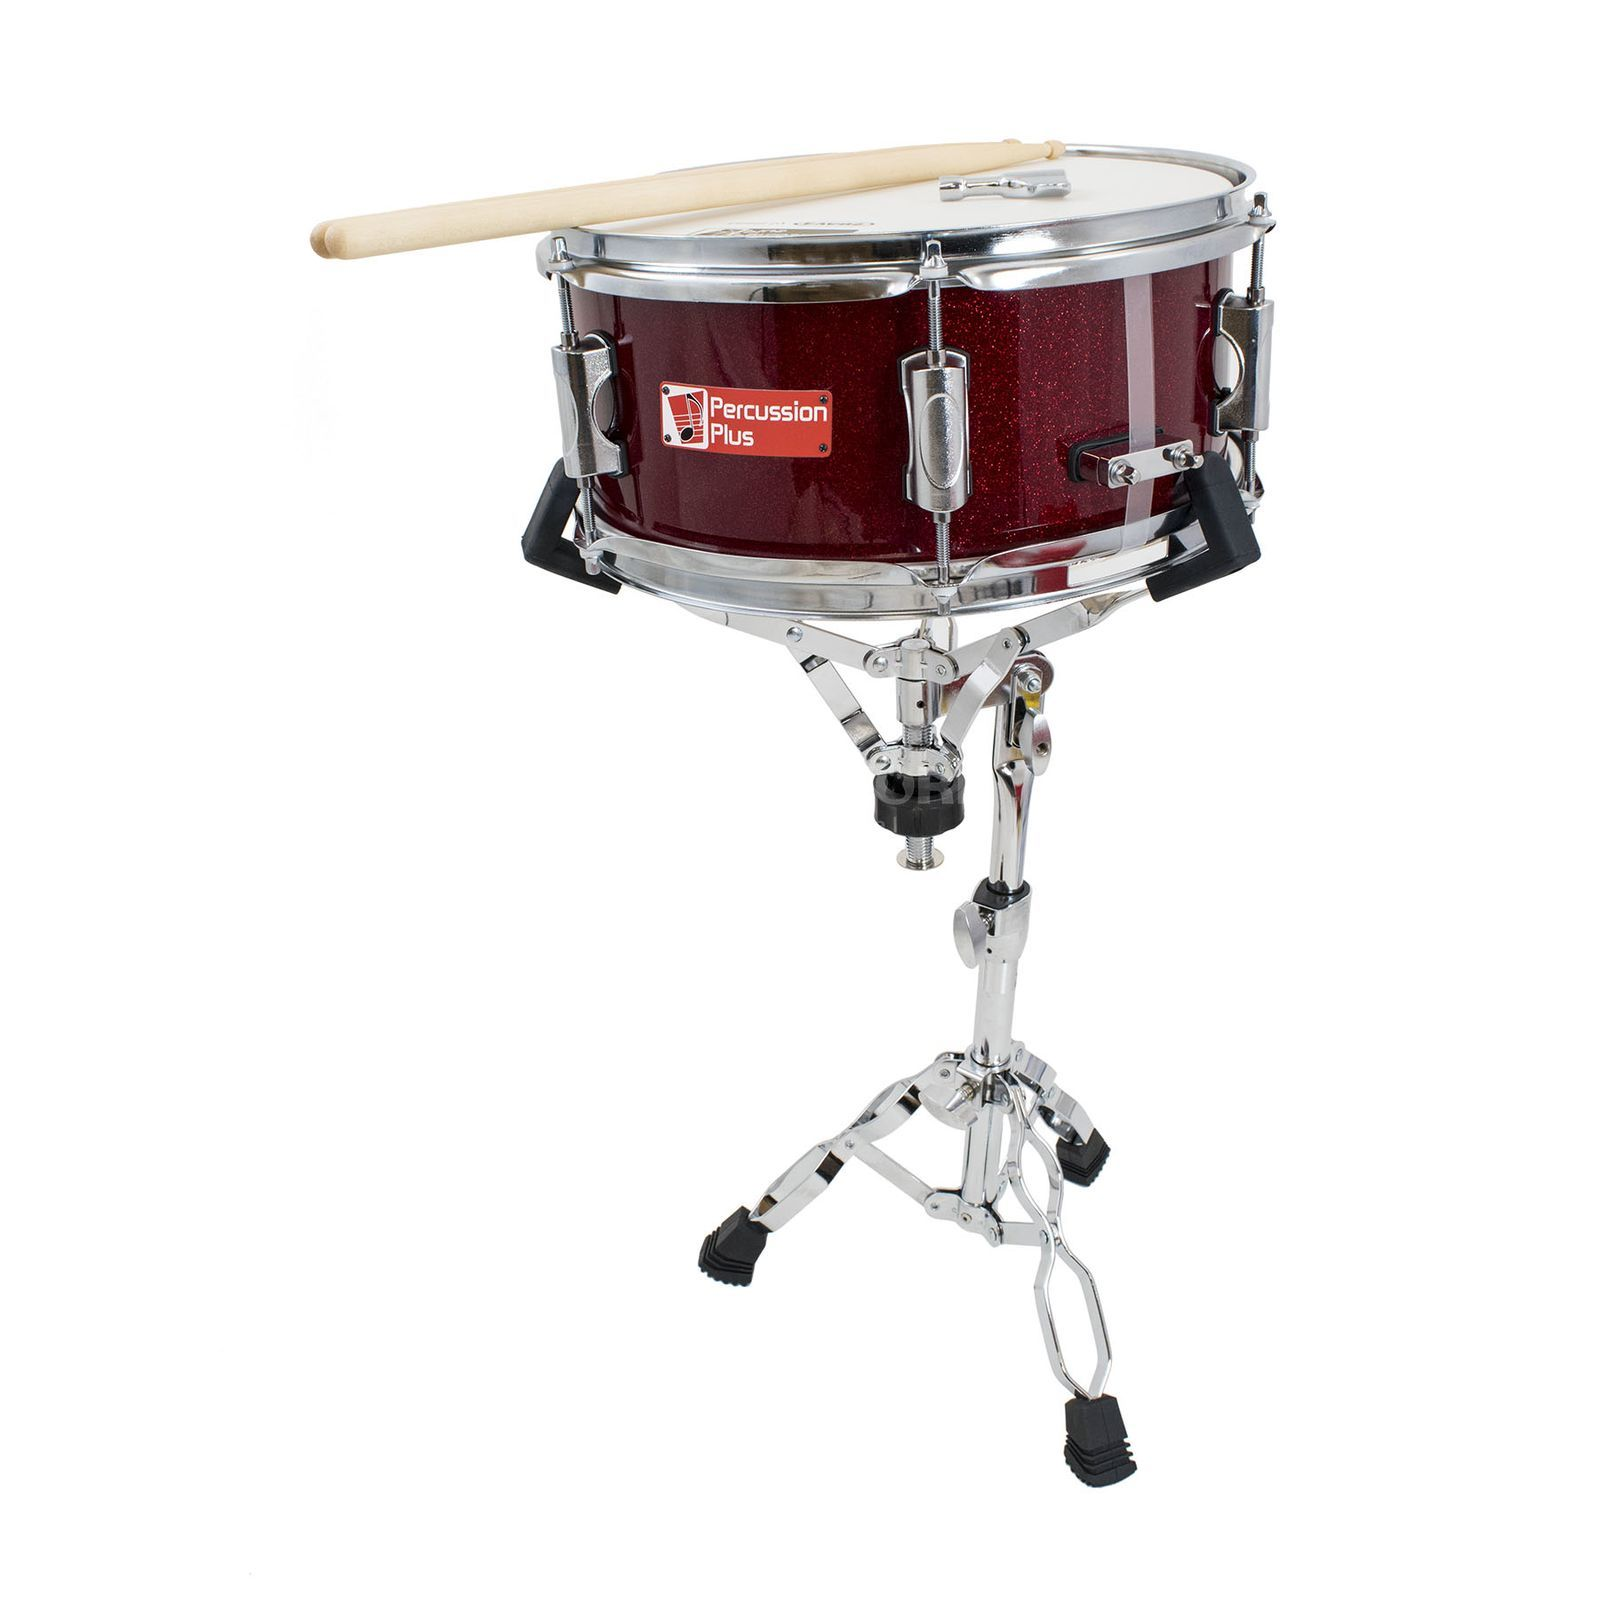 "Percussion Plus PP260 Junior Snare 12""x5,5"", incl. Stand & Sticks Produktbillede"